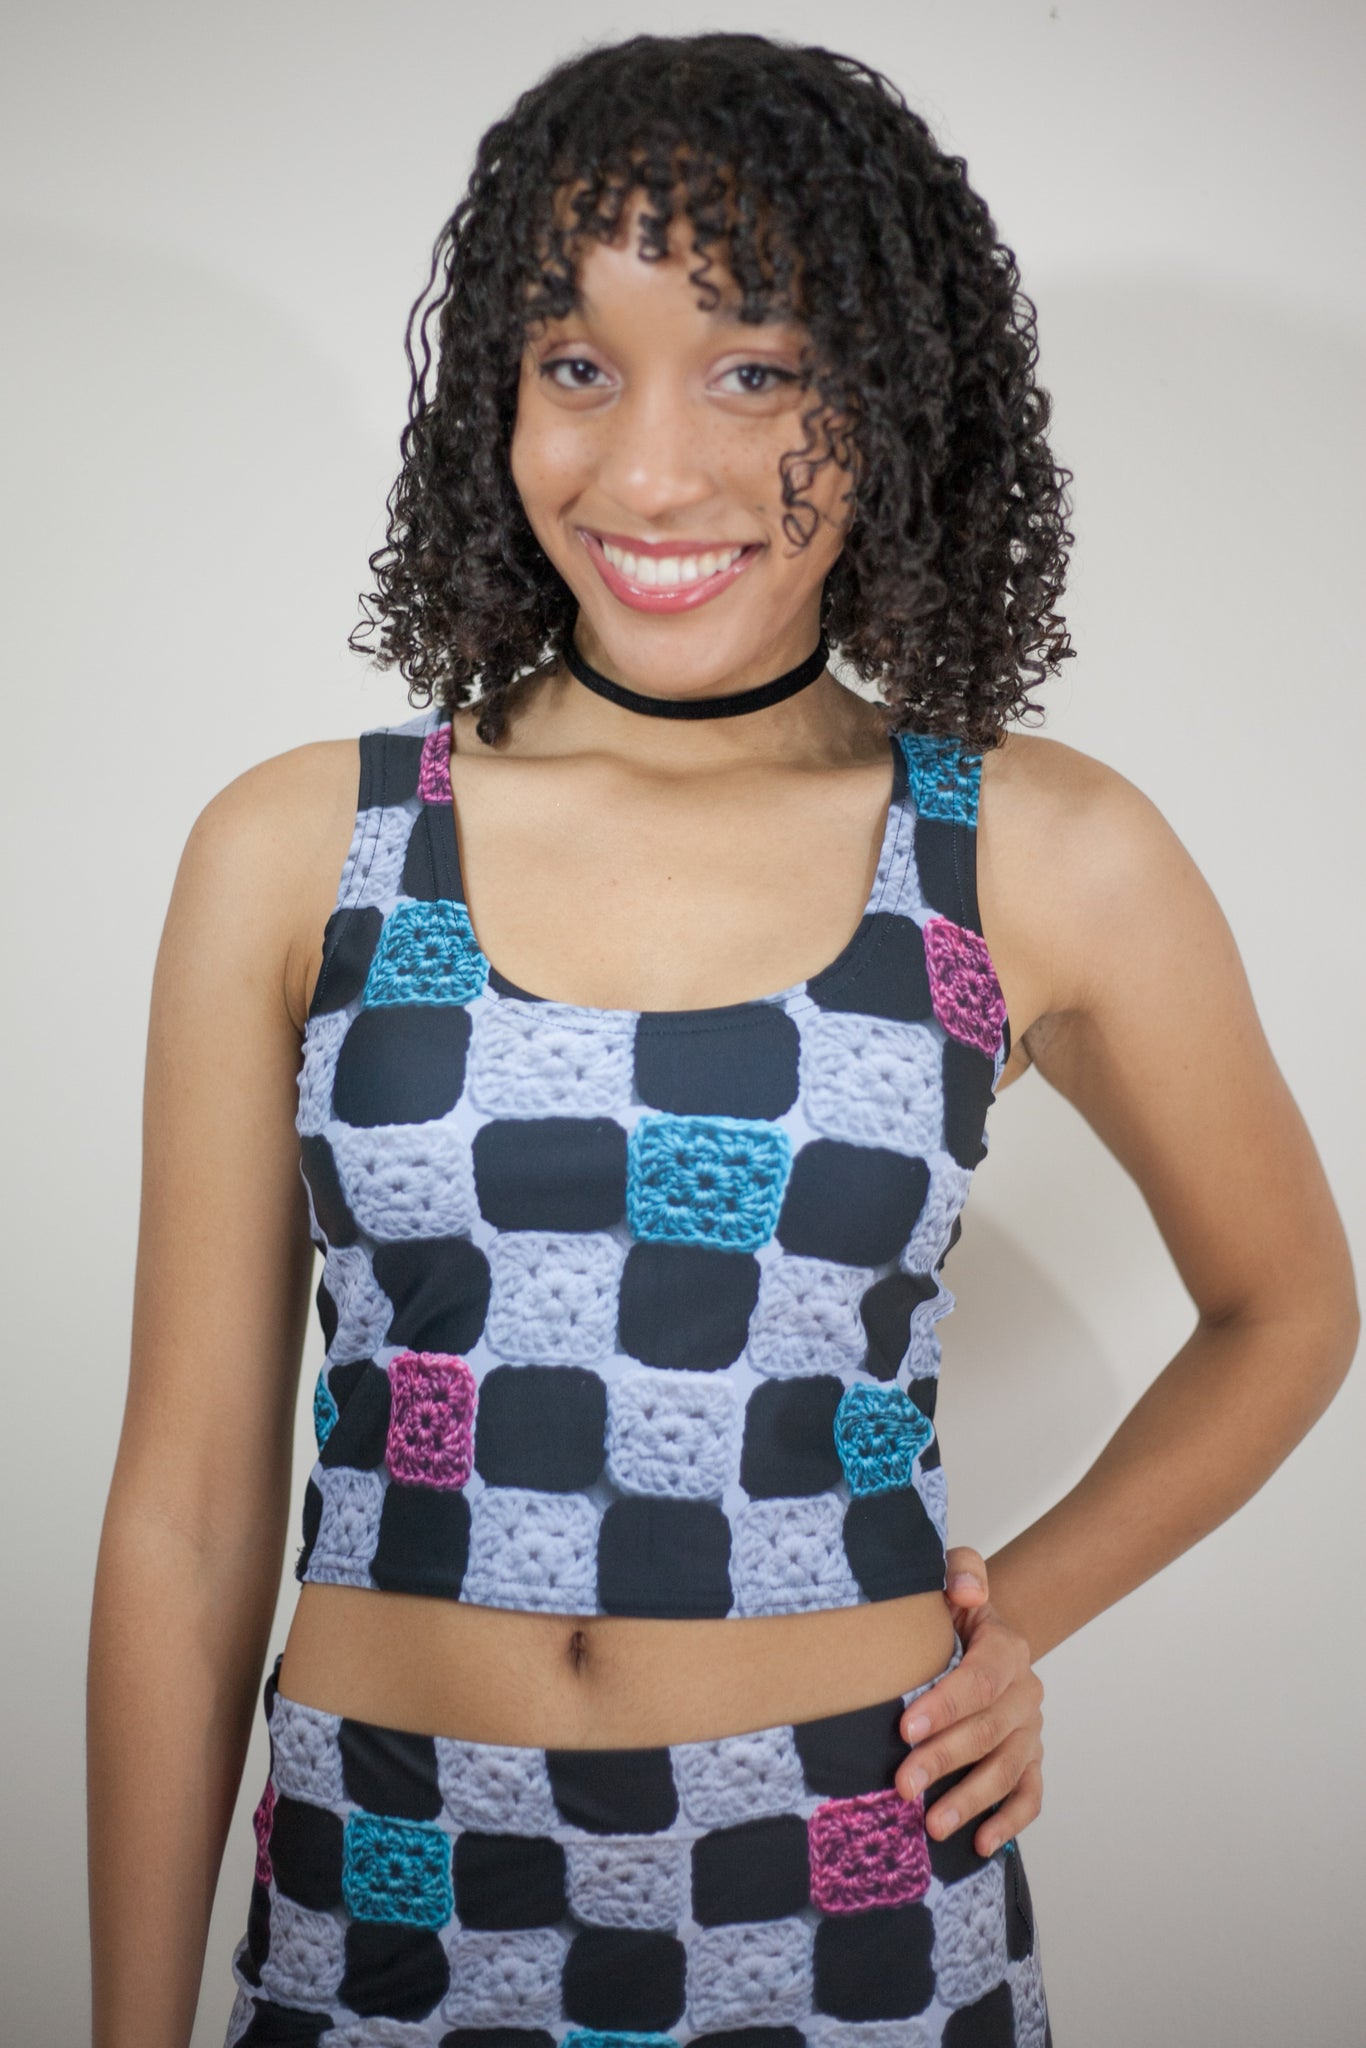 'Chez Chex' Smooth Crochet Print Crop Top